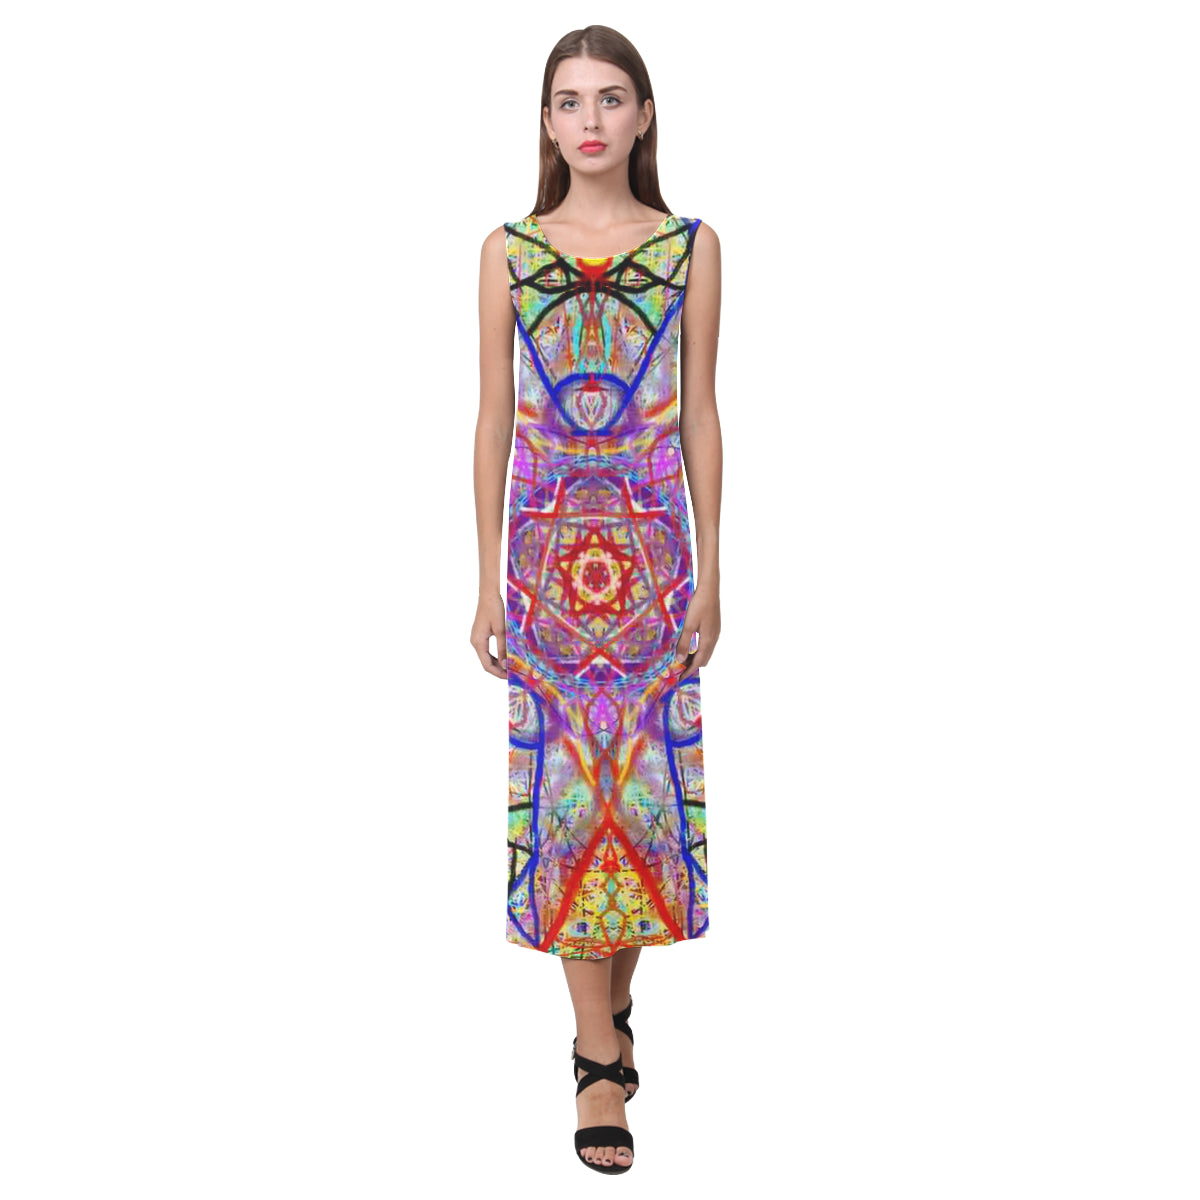 Thleudron Women's Whimsical Phaedra Sleeveless Open Fork Long Dress (Model D08) - Thleudron